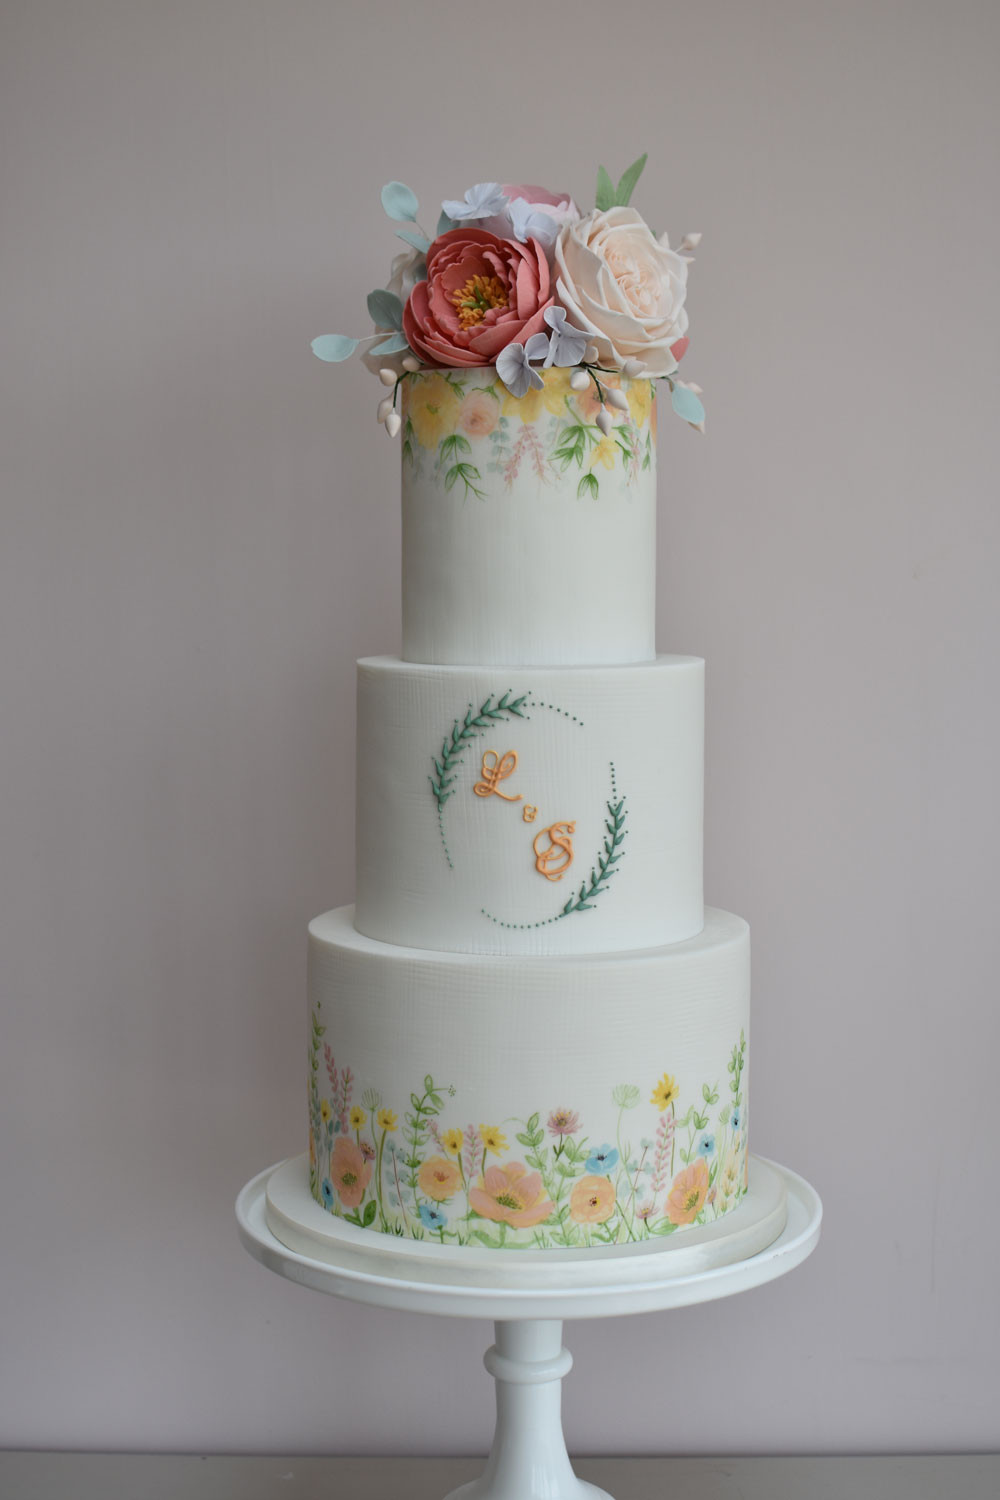 3 tiered wedding cake with sugar paste flowers and hand painted florals by Bake My Cake